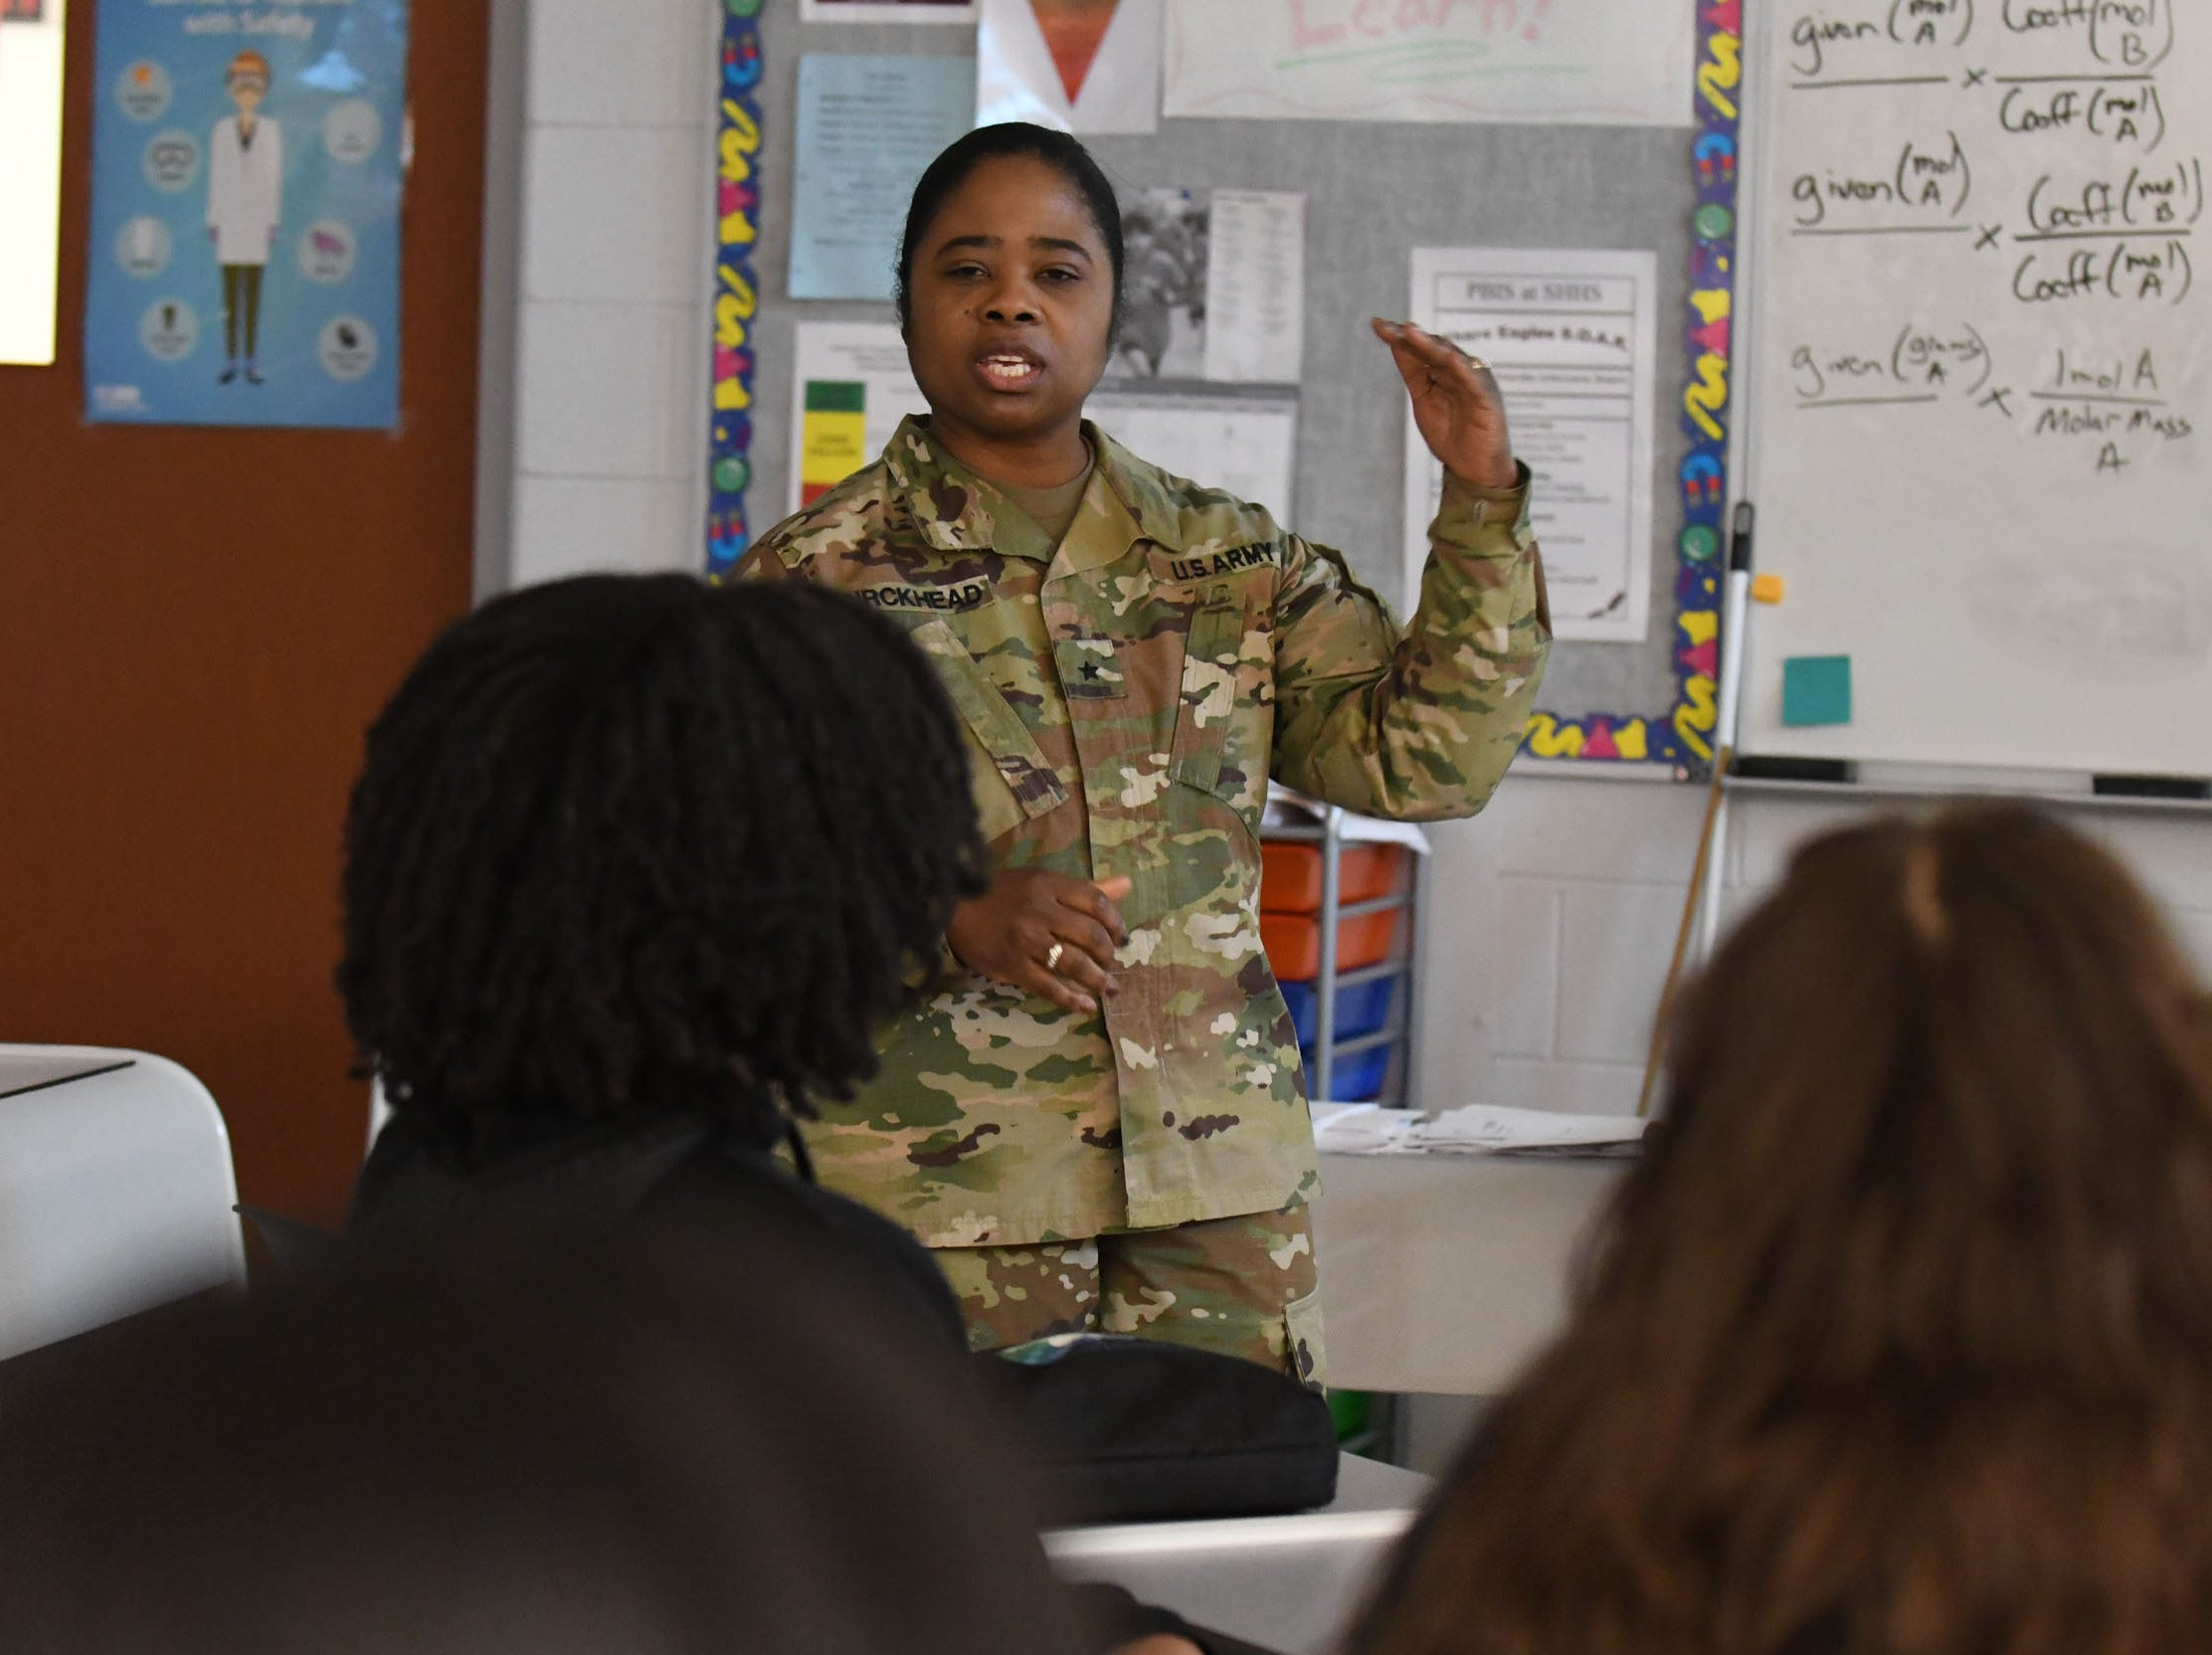 General Birckhead and her team of leaders spoke with the students about leadership and making good decisions on Friday, April 5, 2019.